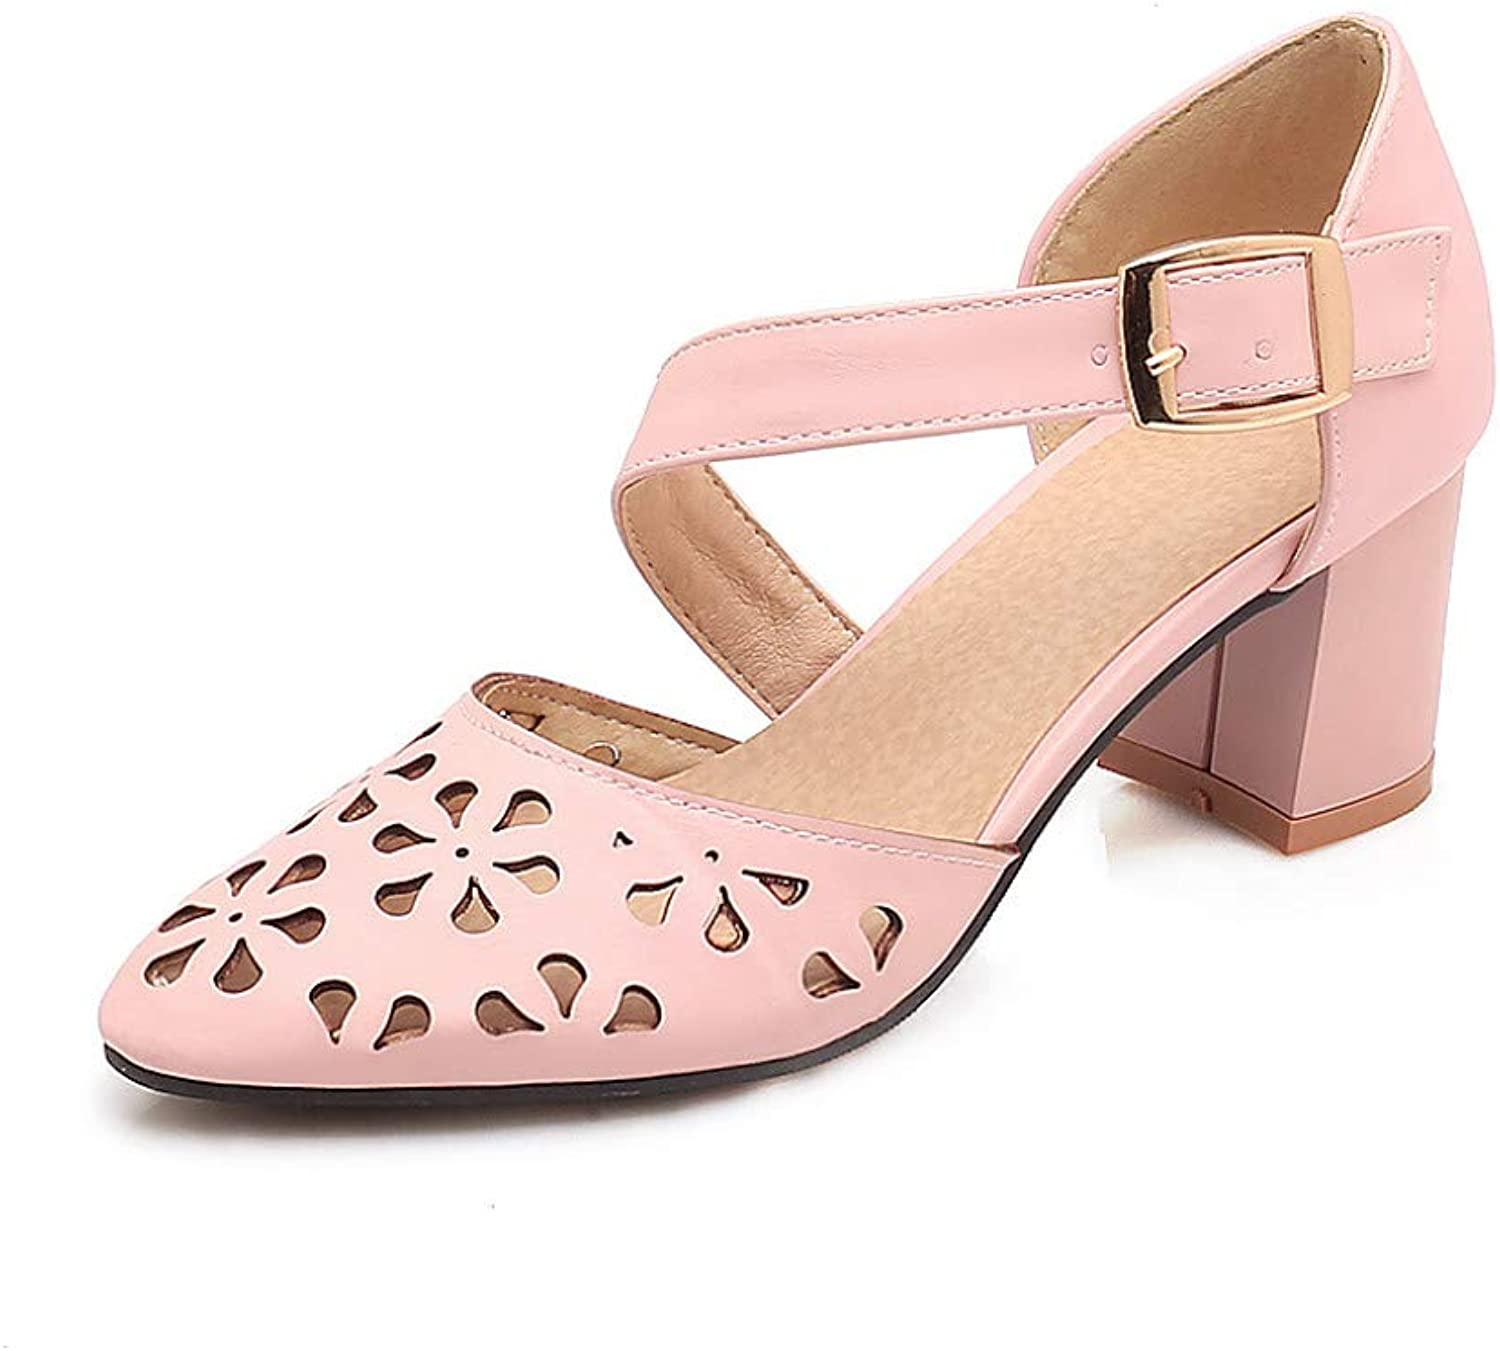 Women High Heels Sandals Closed Toe Cut Out Breathable Ladies Strap Buckle Slip On Casual shoes